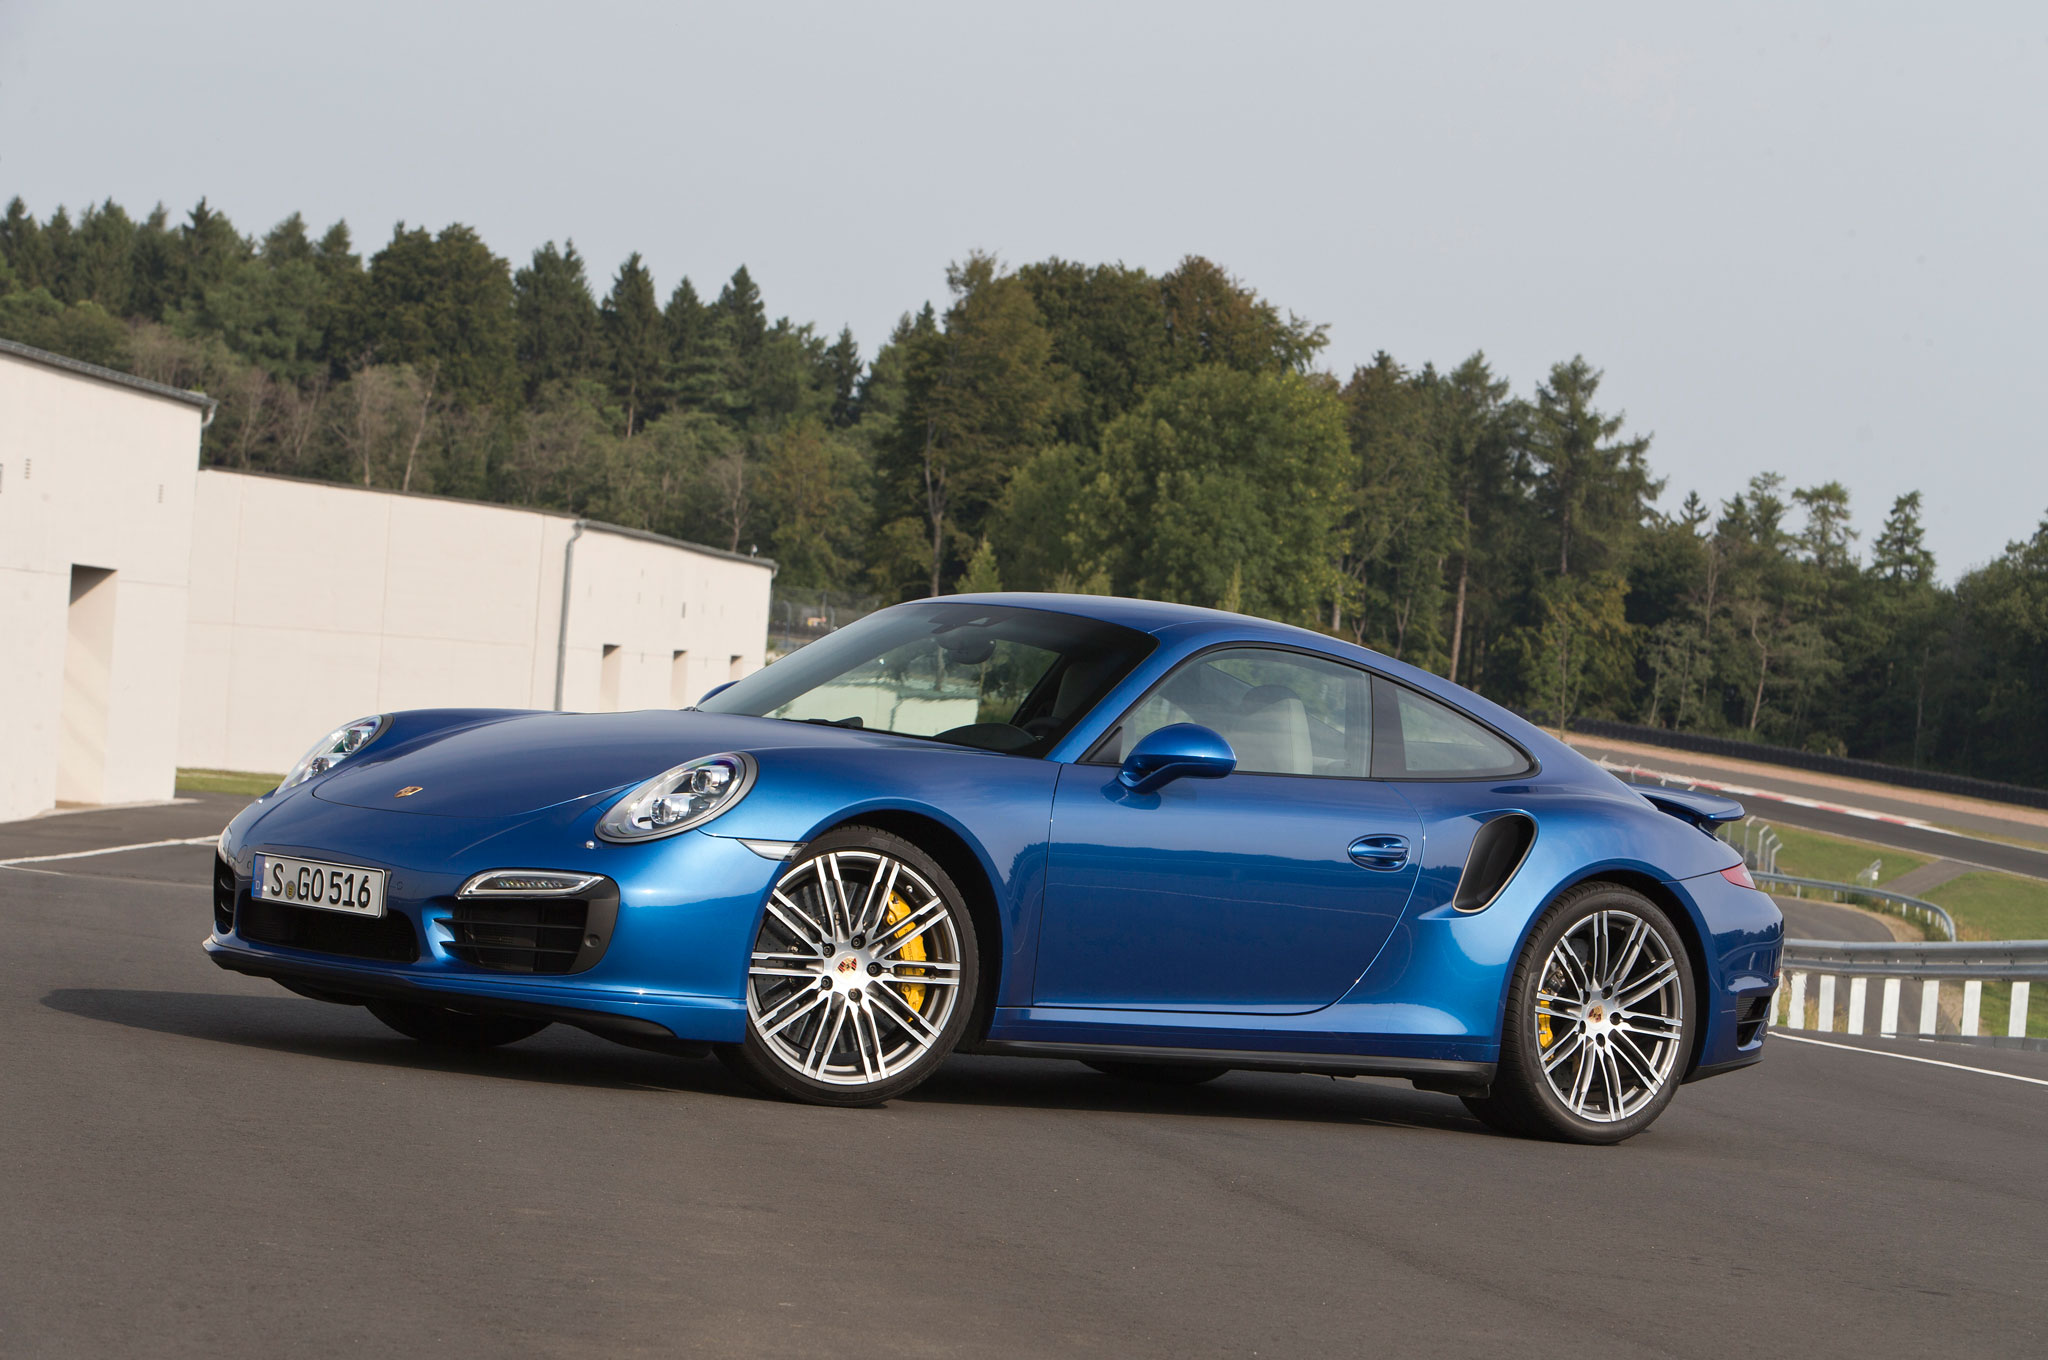 2014-Porsche-911-Turbo-S-front-left-side-view-2 Outstanding Porsche 911 Gt2 Rs Price In India Cars Trend